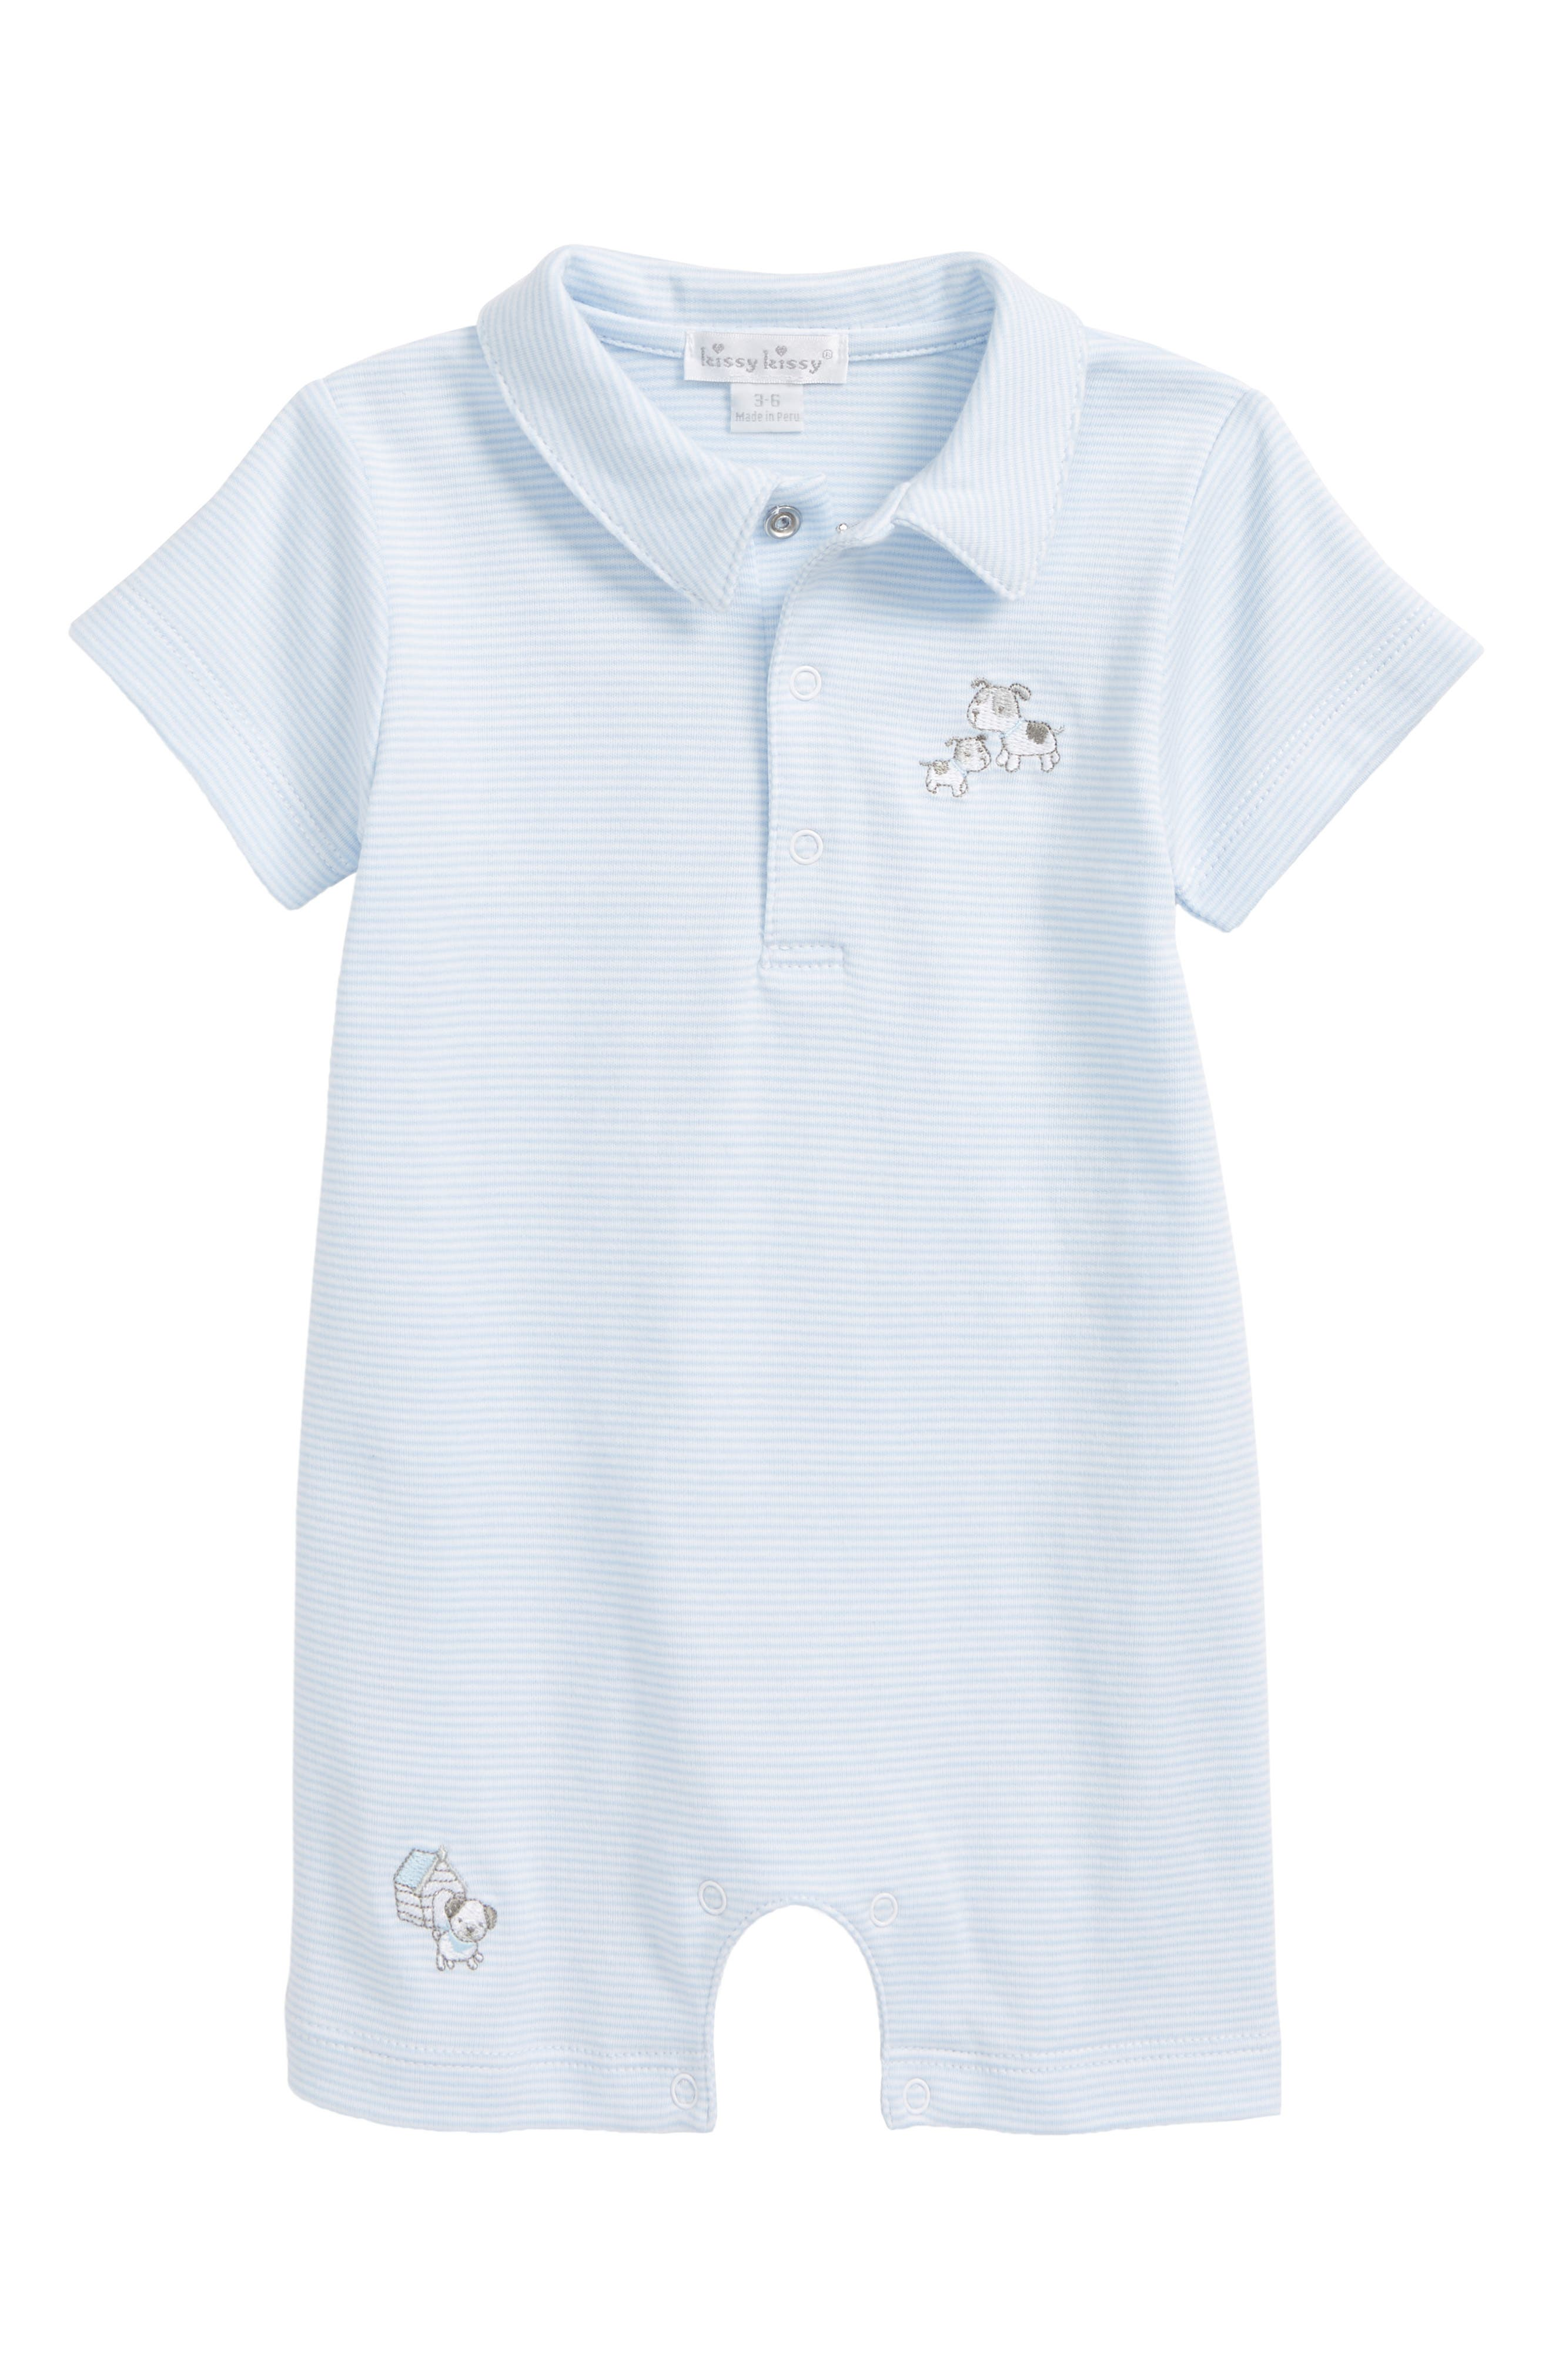 Dog Day Out Polo Romper,                         Main,                         color, 480